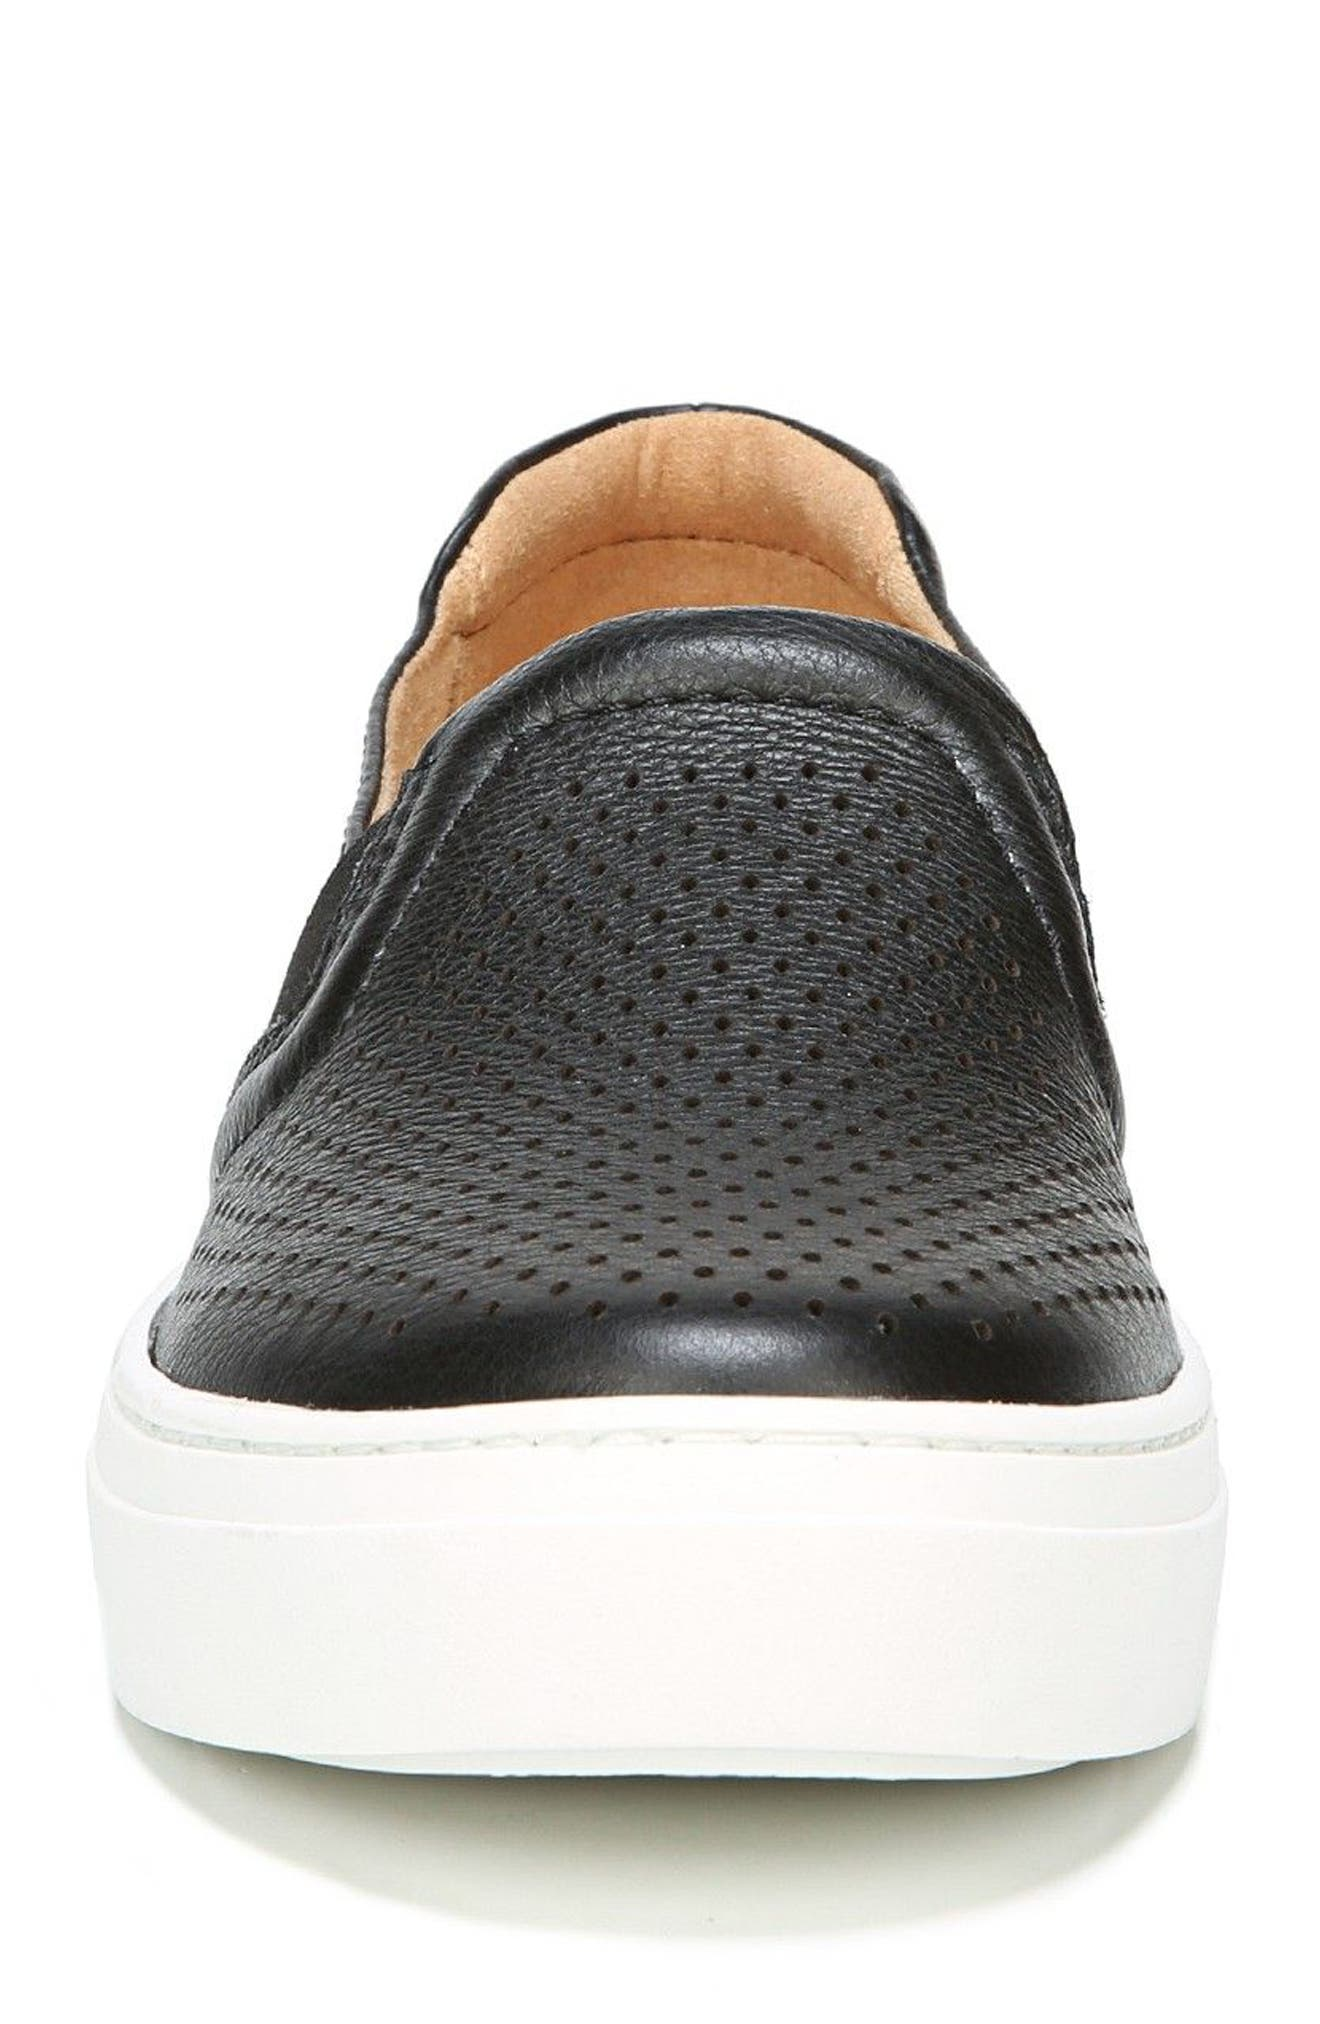 Carly Slip-On Sneaker,                             Alternate thumbnail 4, color,                             BLACK PEBBLED LEATHER